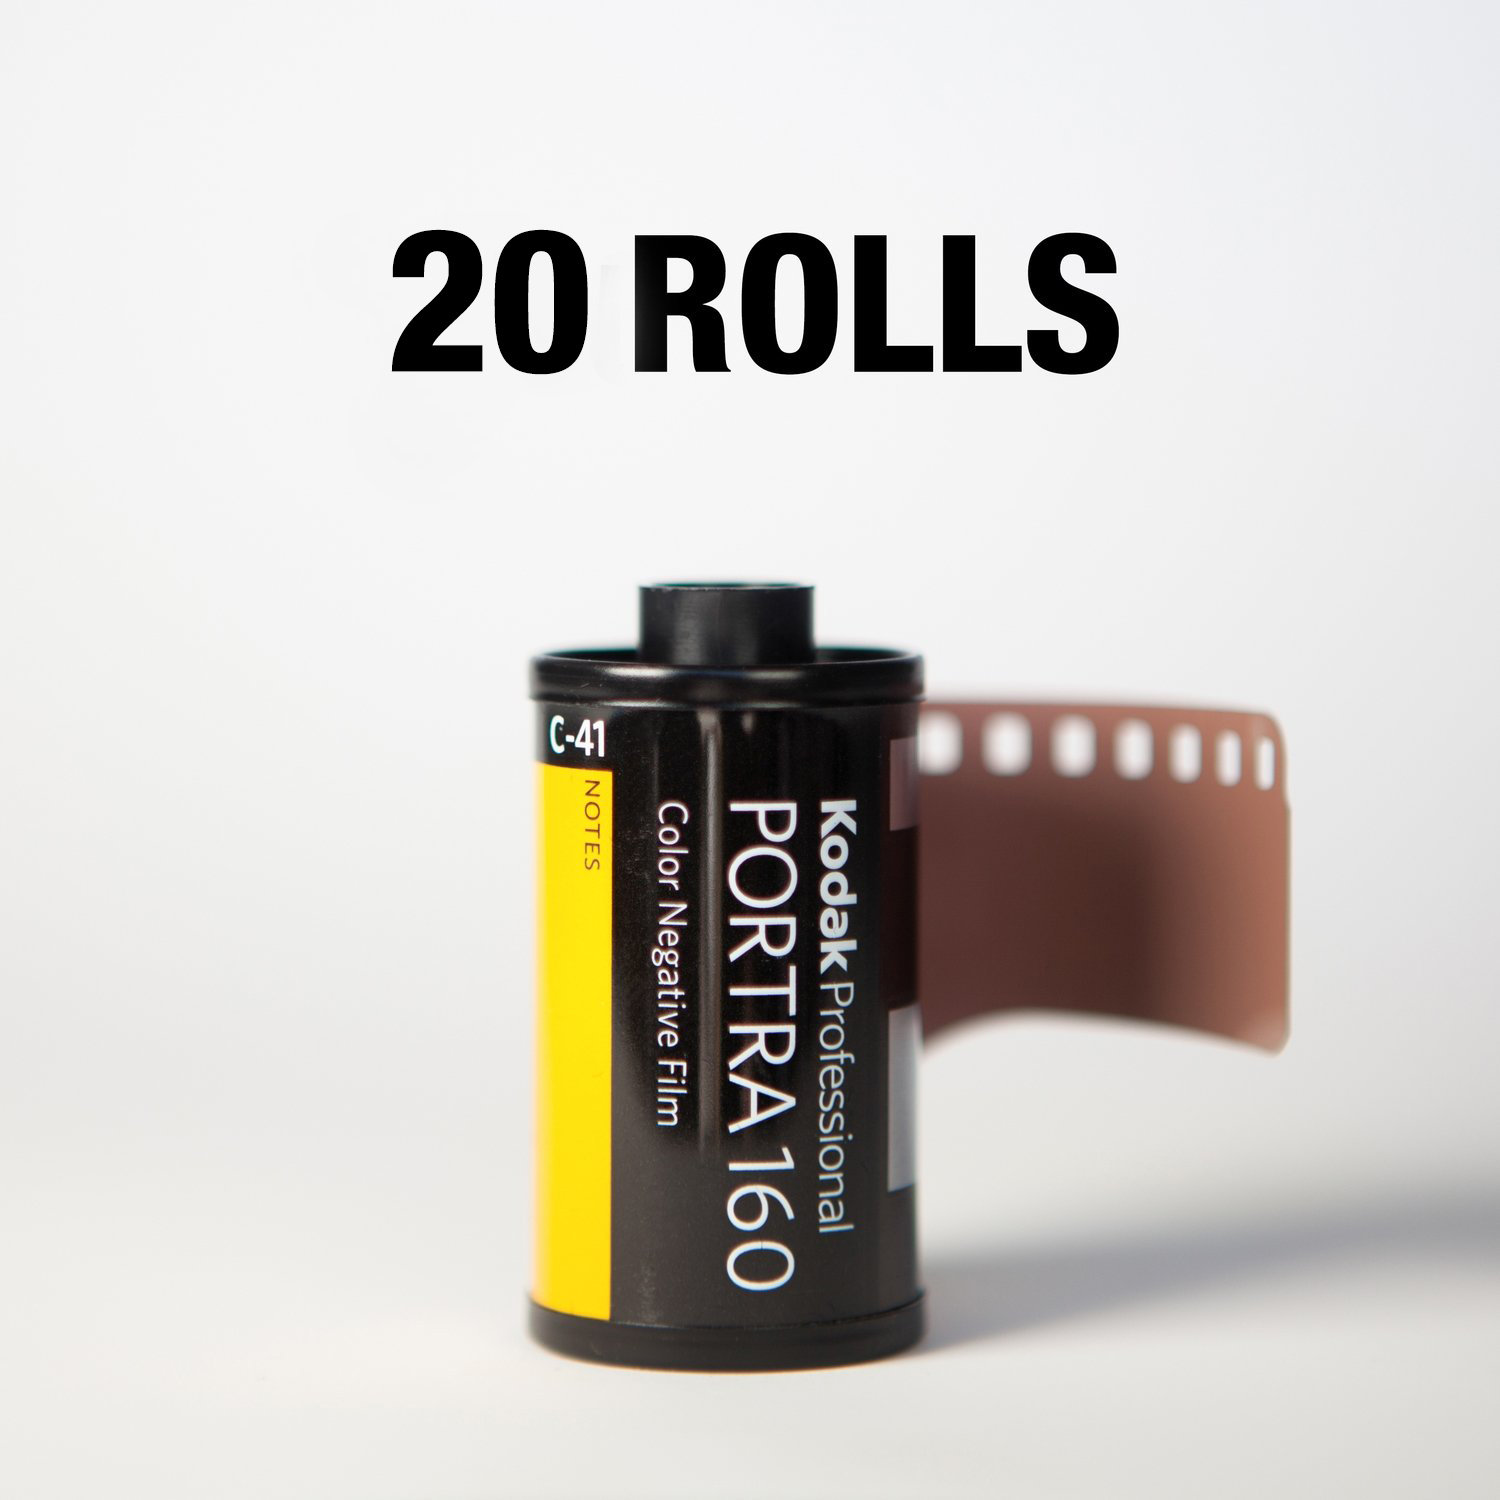 Kodak Portra 160 35mm 36 Exp - 20 Rolls ($7.25/roll)